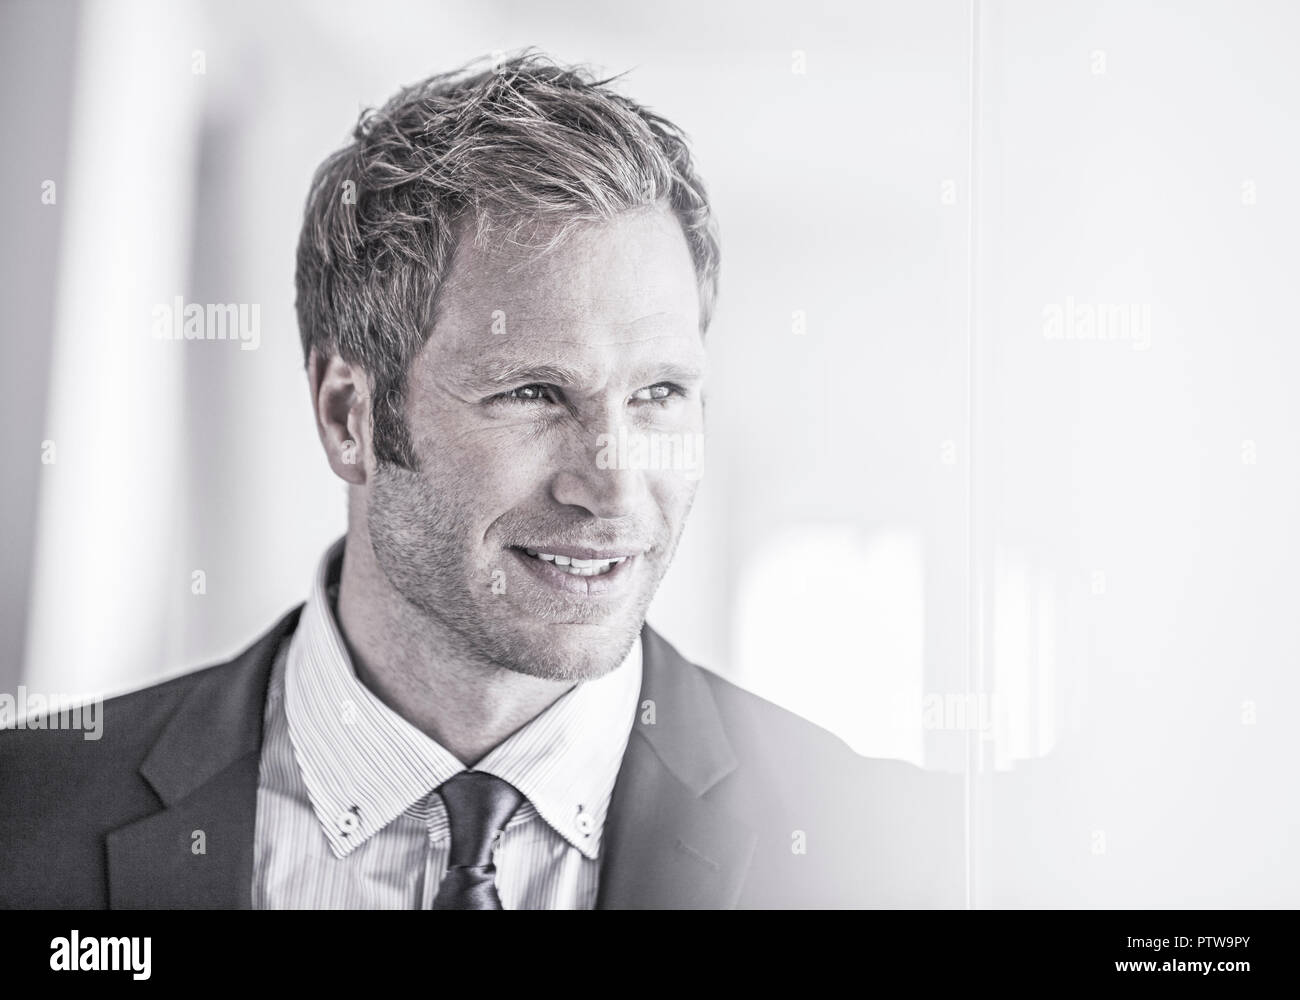 Geschaeftsmann, Portraet (model-released) - Stock Image